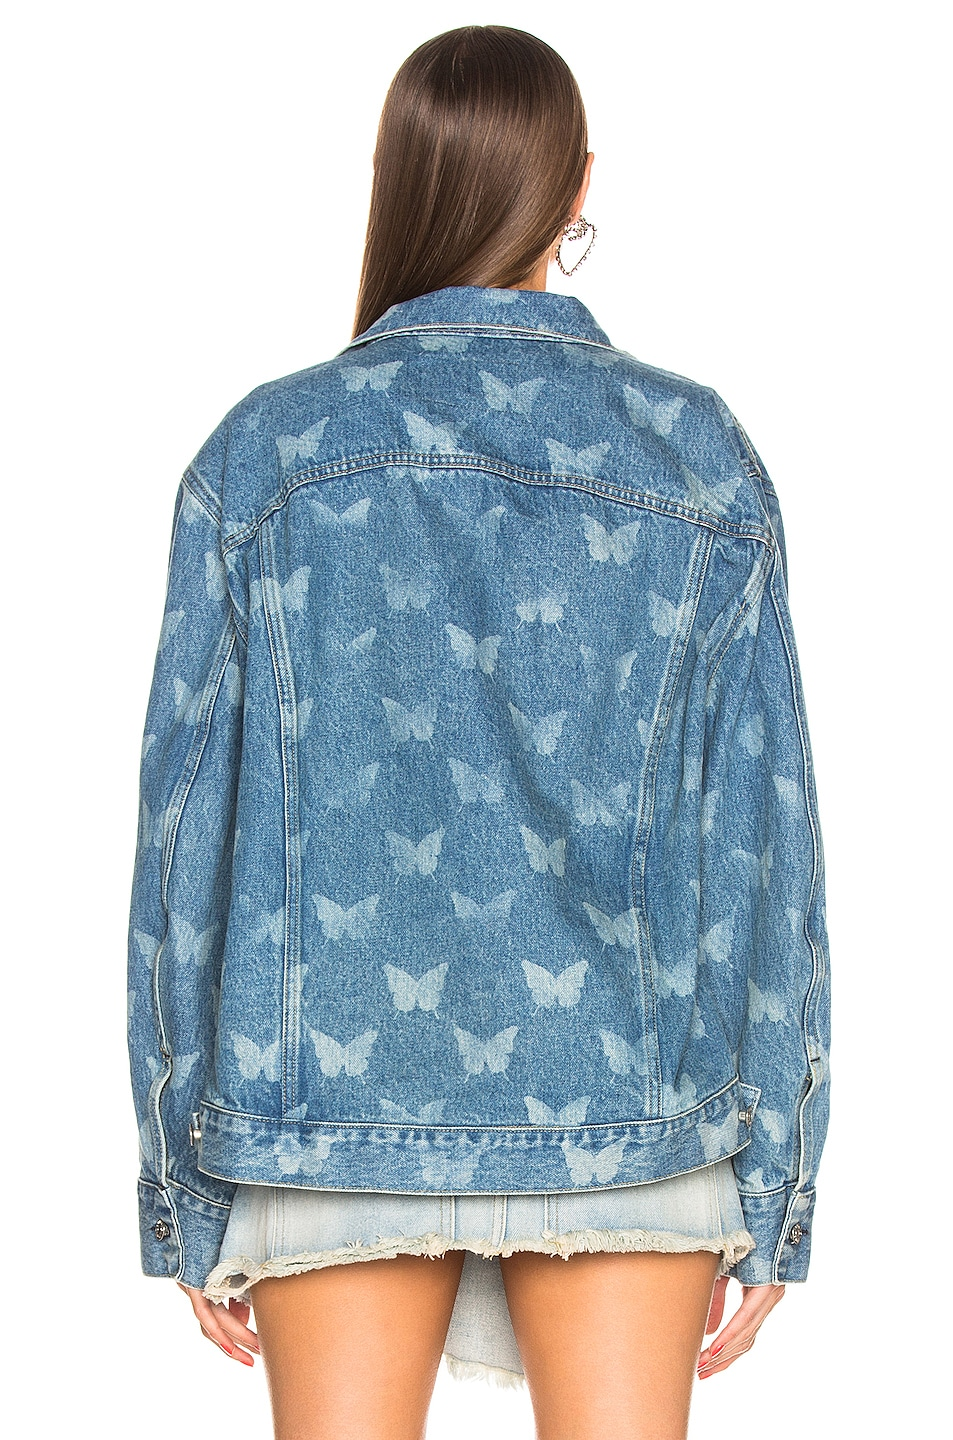 Image 3 of Sandy Liang Morpho Jacket in Portland Wash & Butterfly Laser